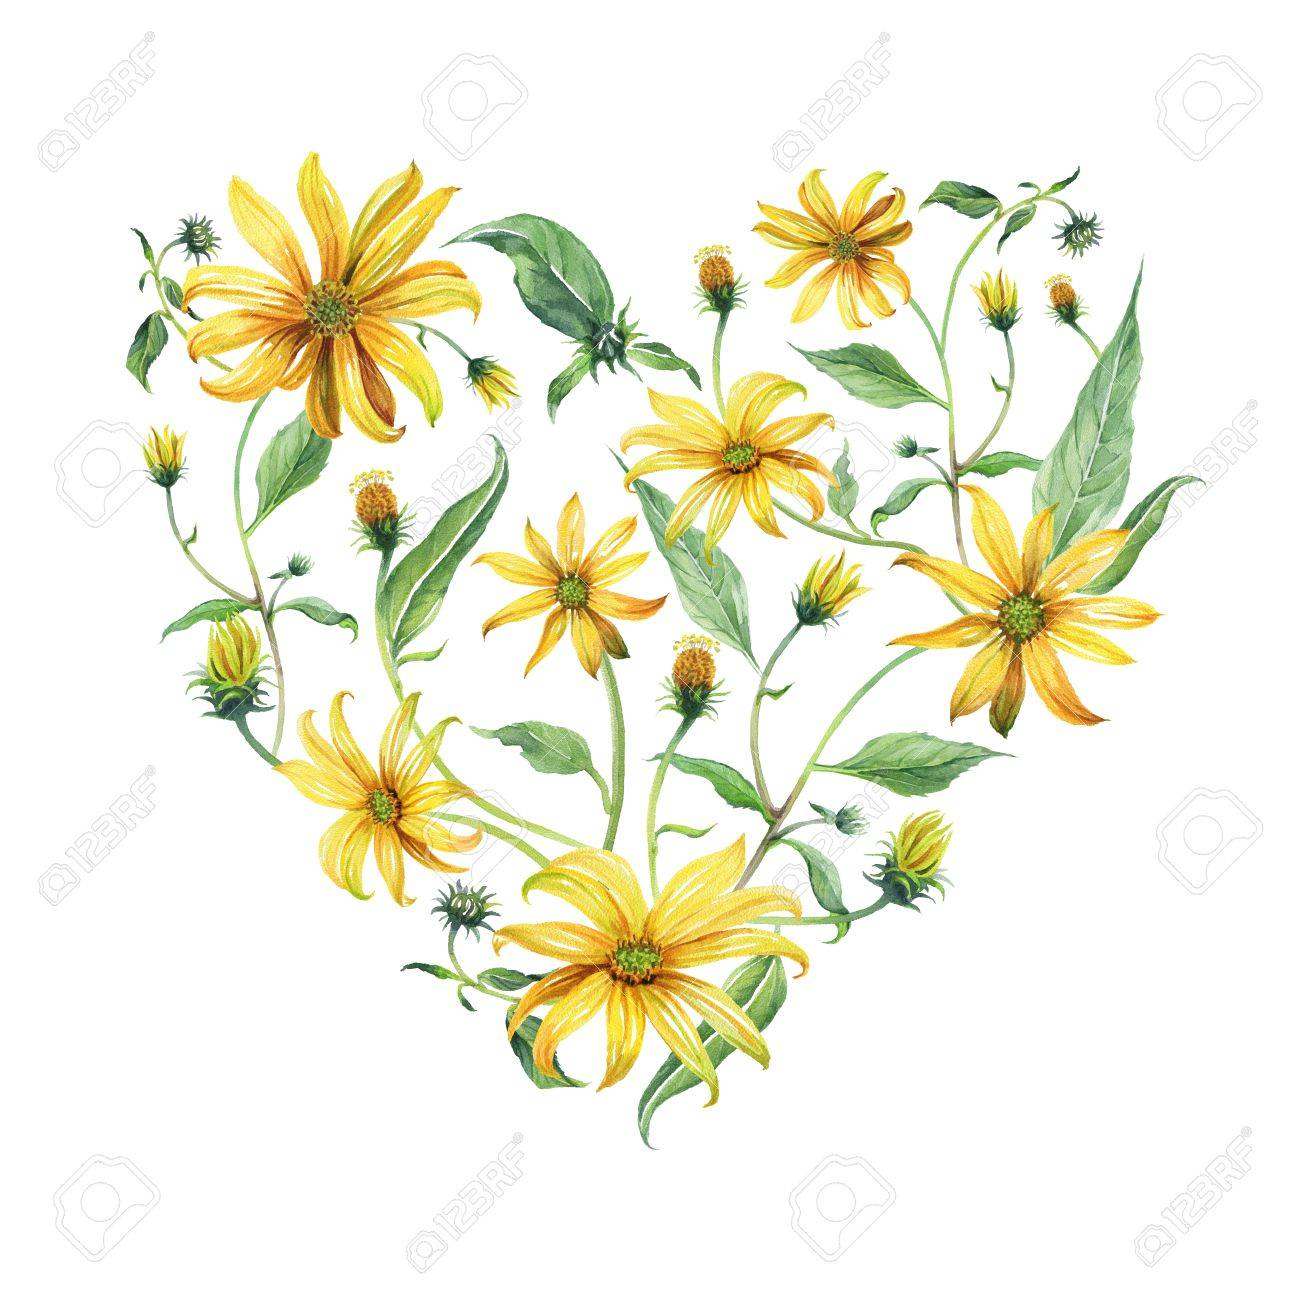 Watercolor Wreath Heart Shaped Yellow Daisies With Green Leaves Stock Photo Picture And Royalty Free Image Image 71890471